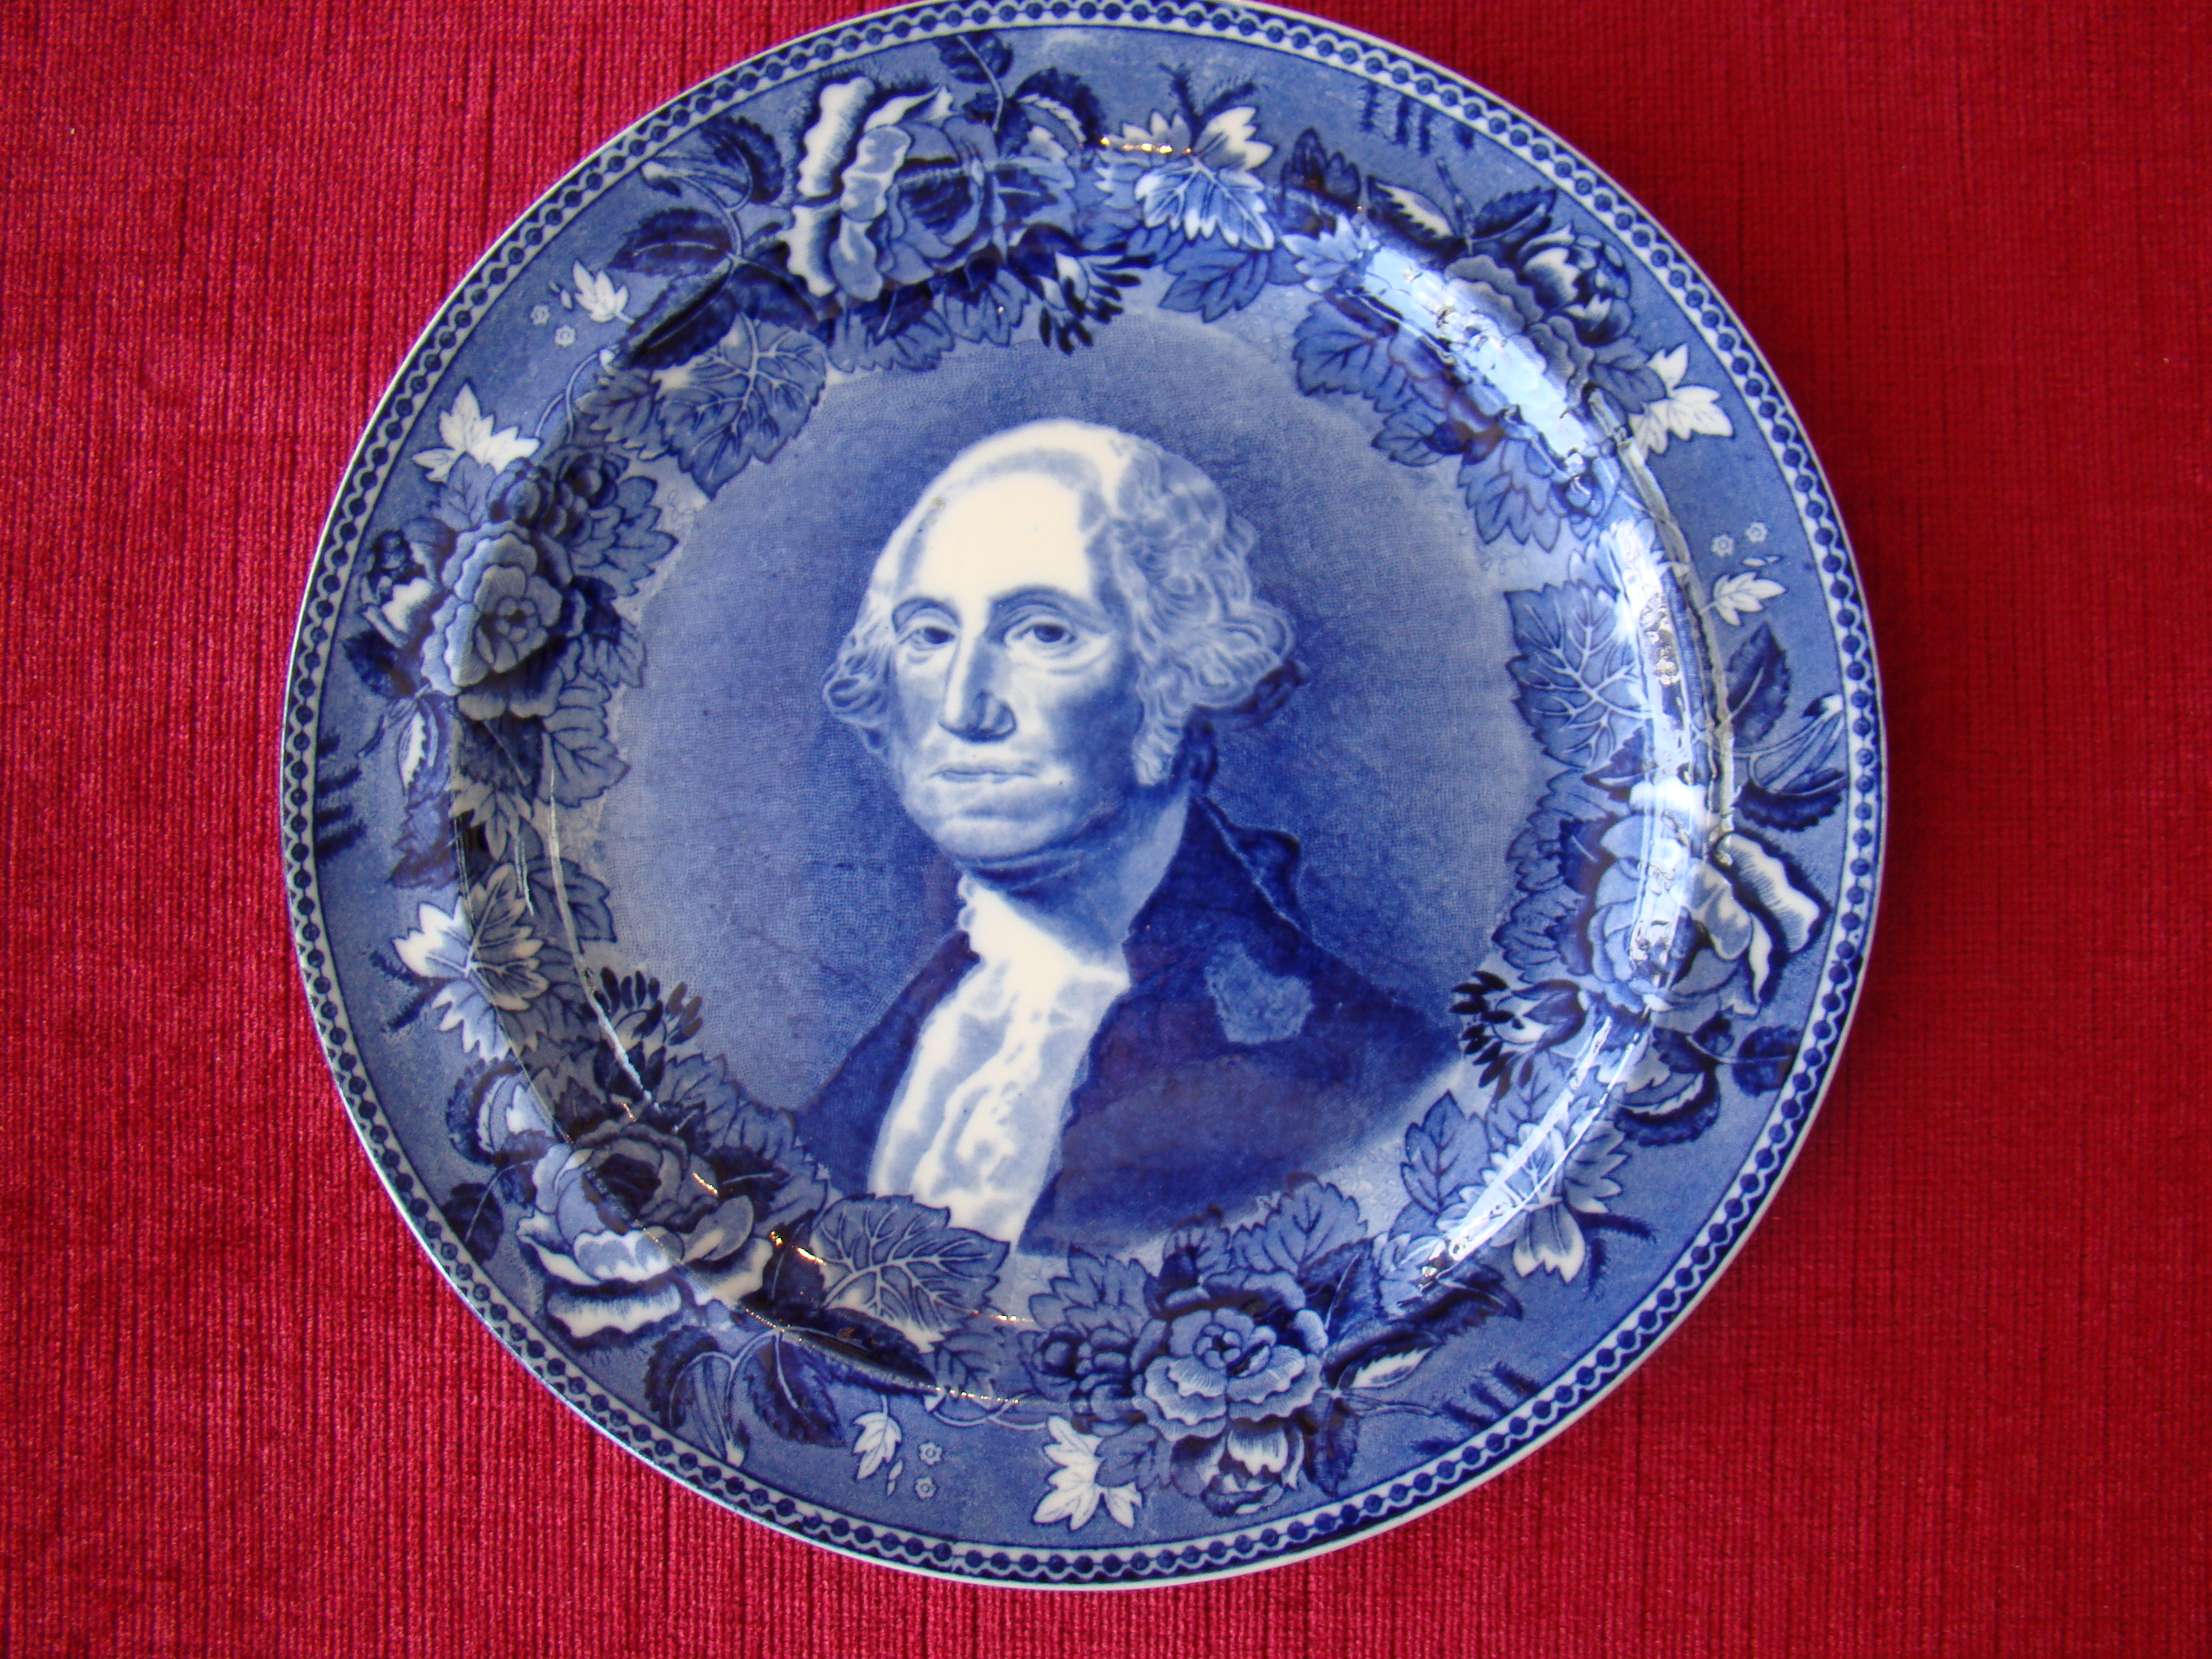 click to view larger image of A fine and rare Wedgwood plate circa 1900 depicting George Washington